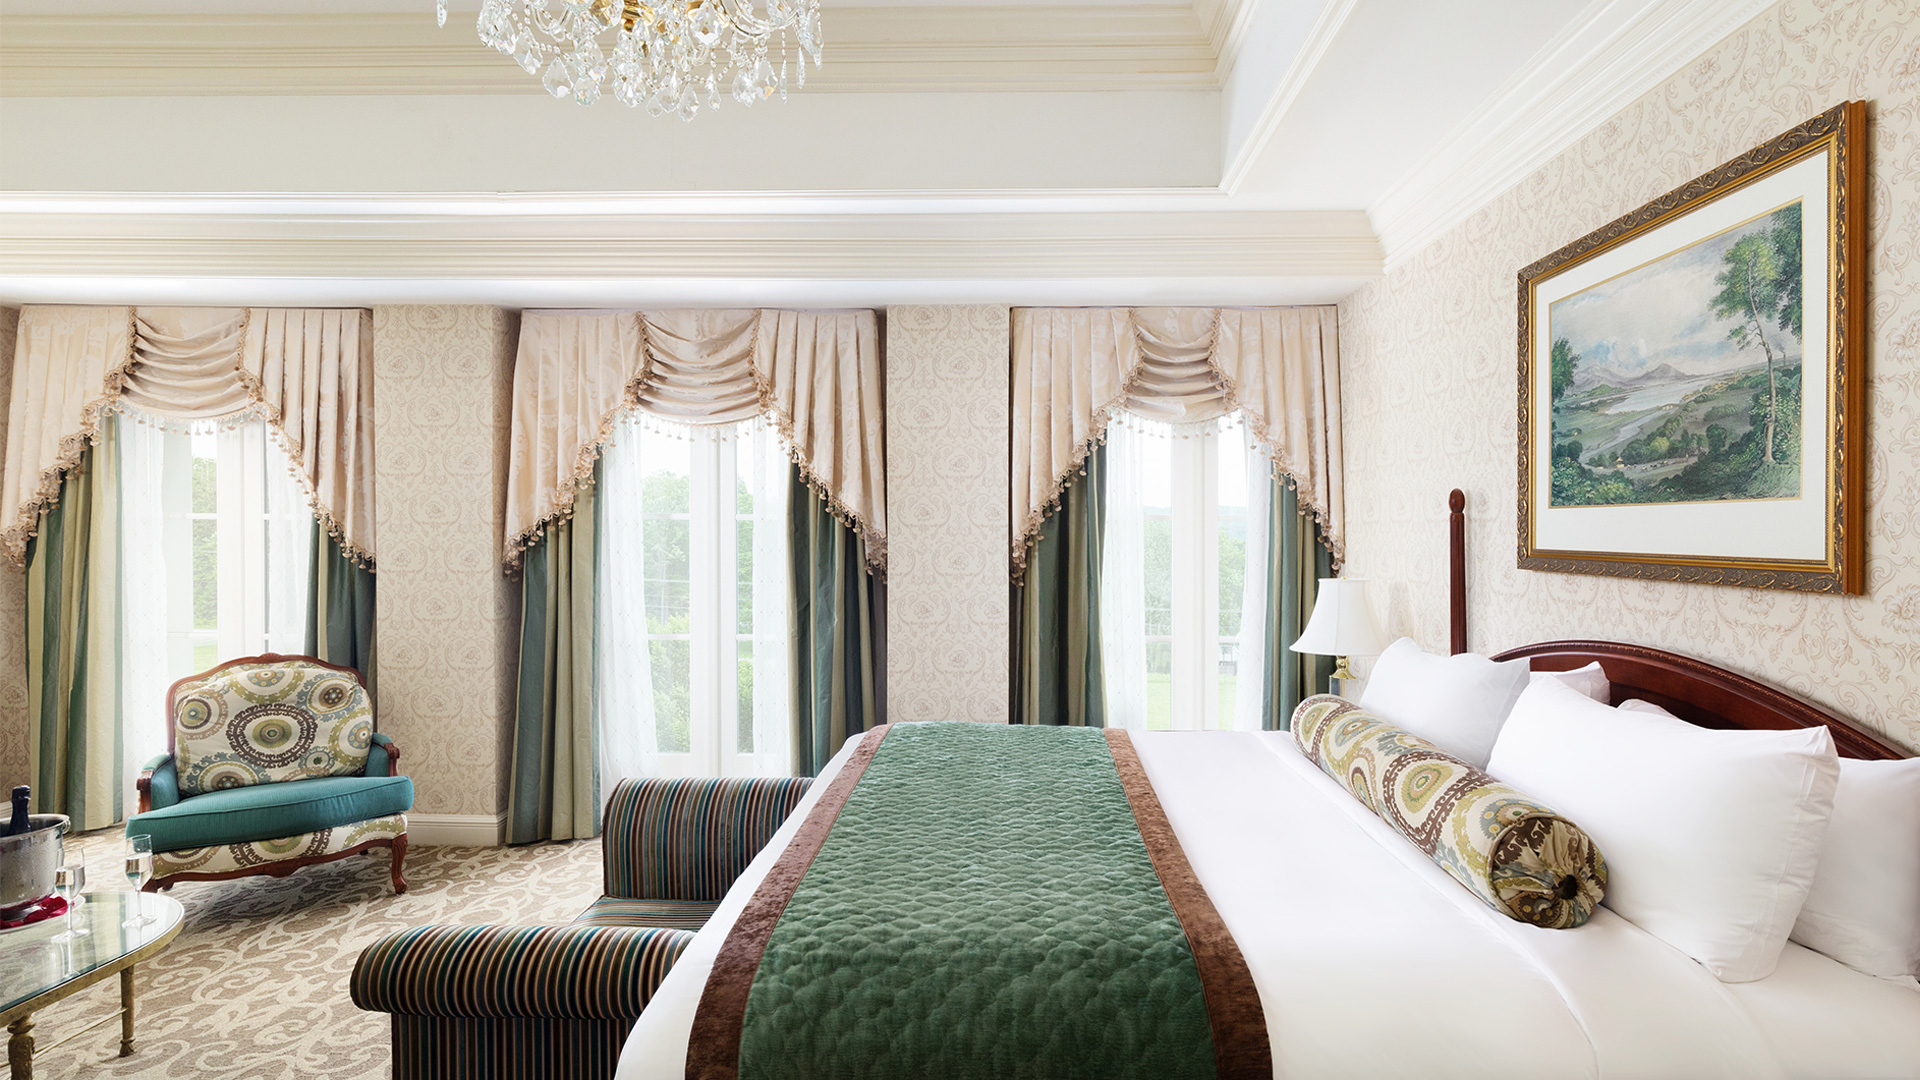 room with large bed and green blanket and large windows